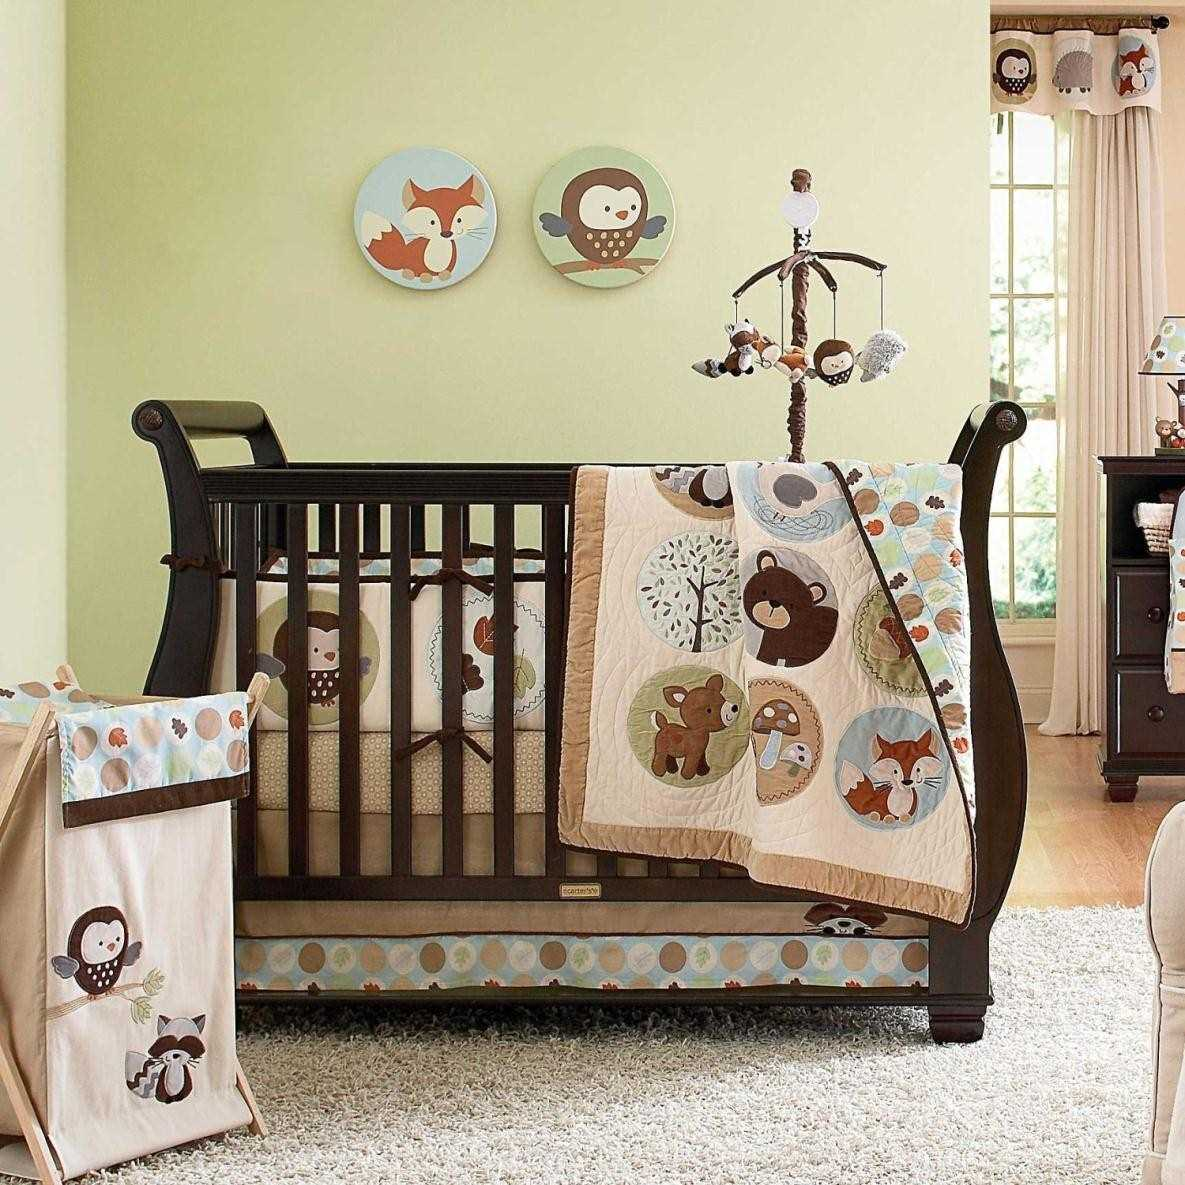 Crib Blankets | Lion King Nursery Set | Lion King Baby Bedding